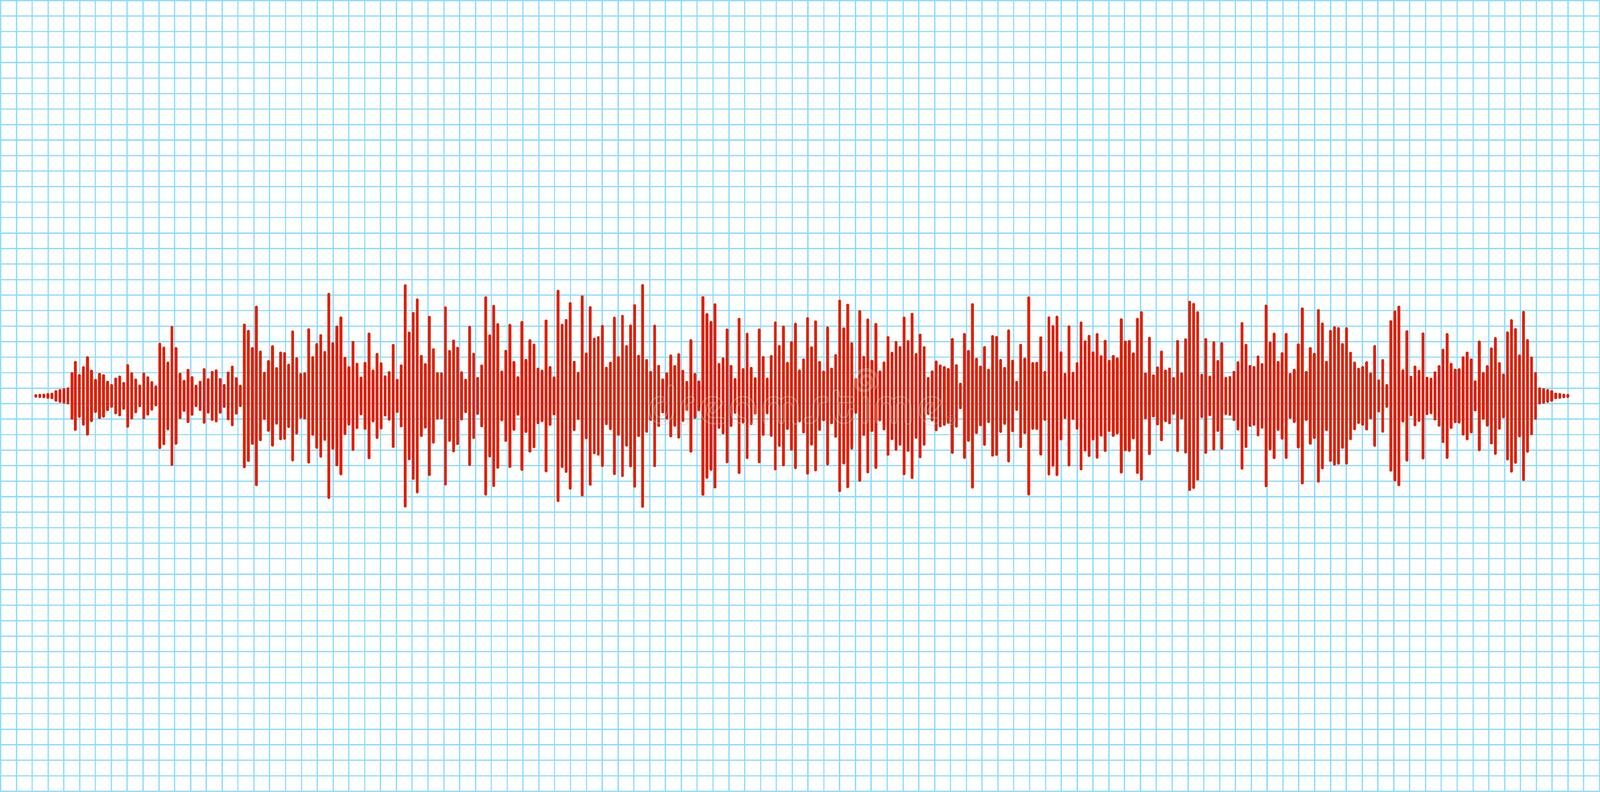 Seismogram earthquake seismic graph diagram. Seismometer or sound waves vibration richter activity.  stock illustration